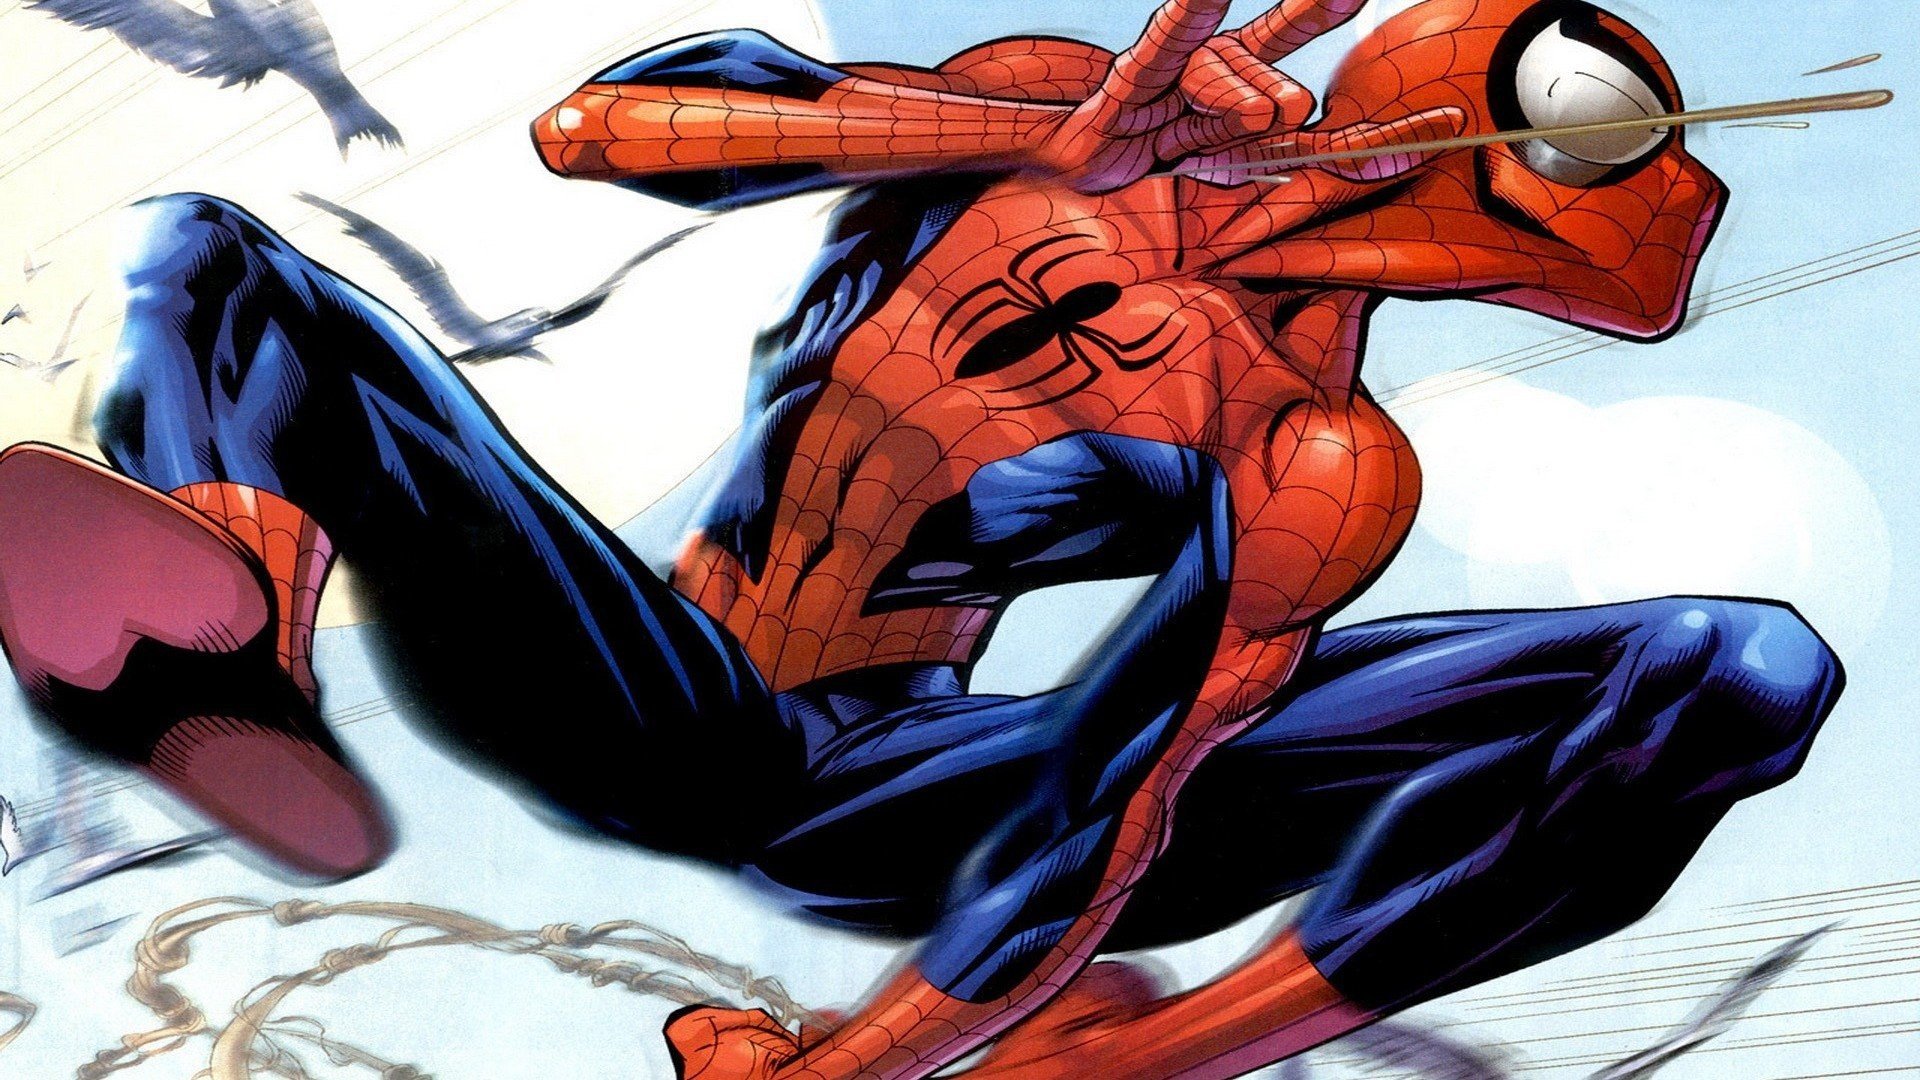 10 Best Spider Man 2099 Wallpaper Hd Full Hd 1920 1080 For: Ultimate Spider Man Wallpapers (70+ Images